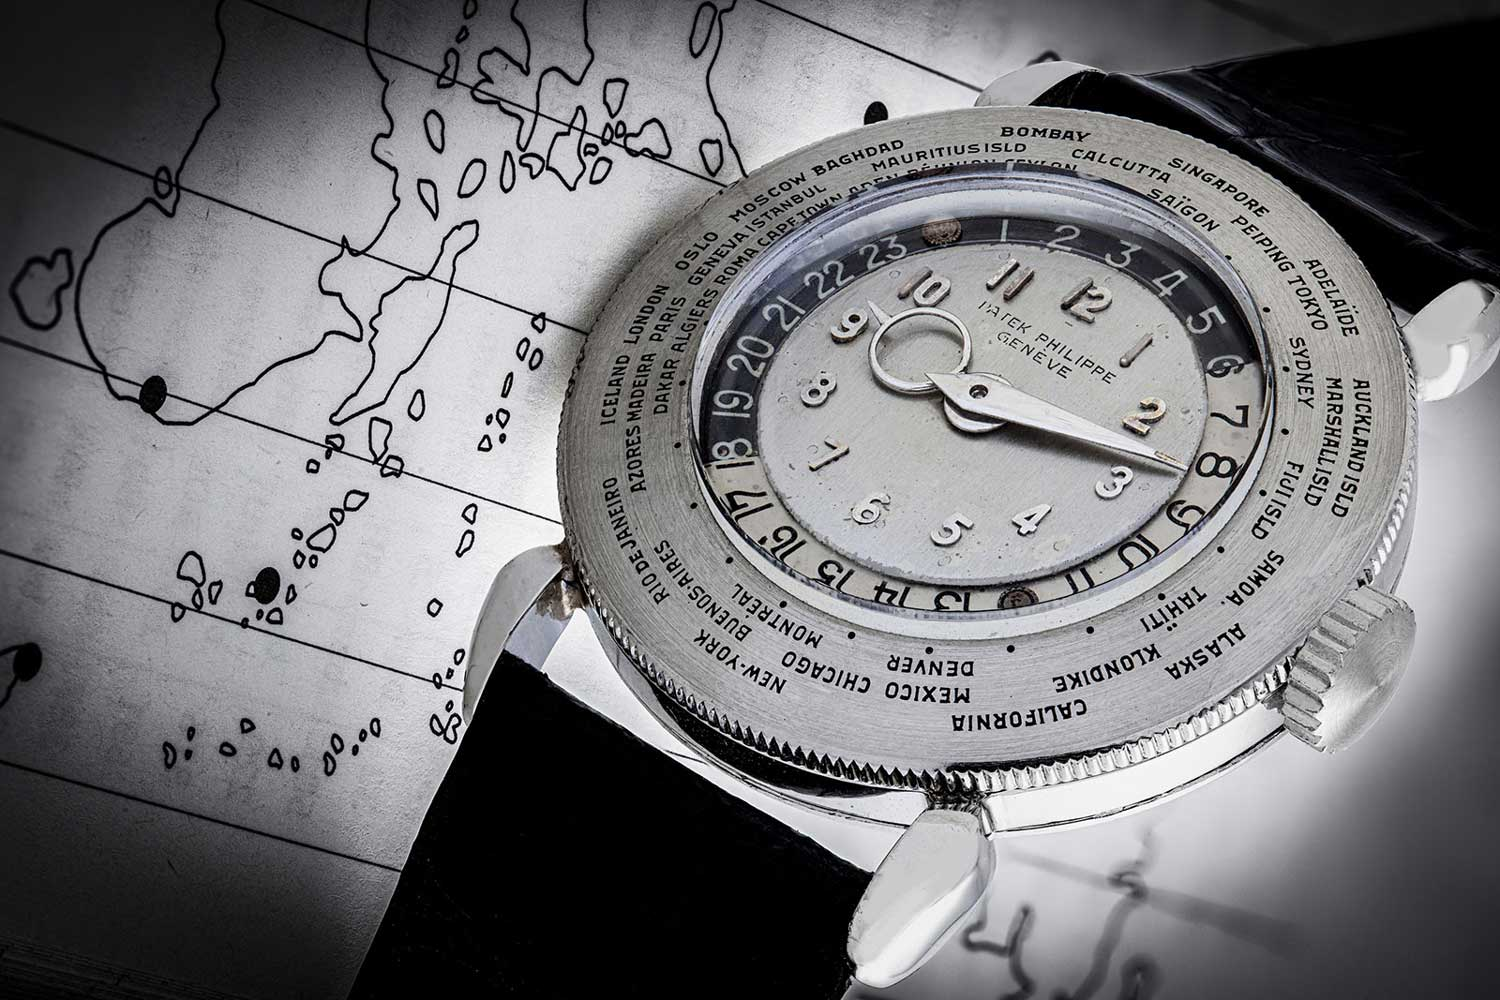 The platinum ref. 1415 HU has its case, dial, hands and even the Arabic hour markers all made out of platinum (Image: Christie's)